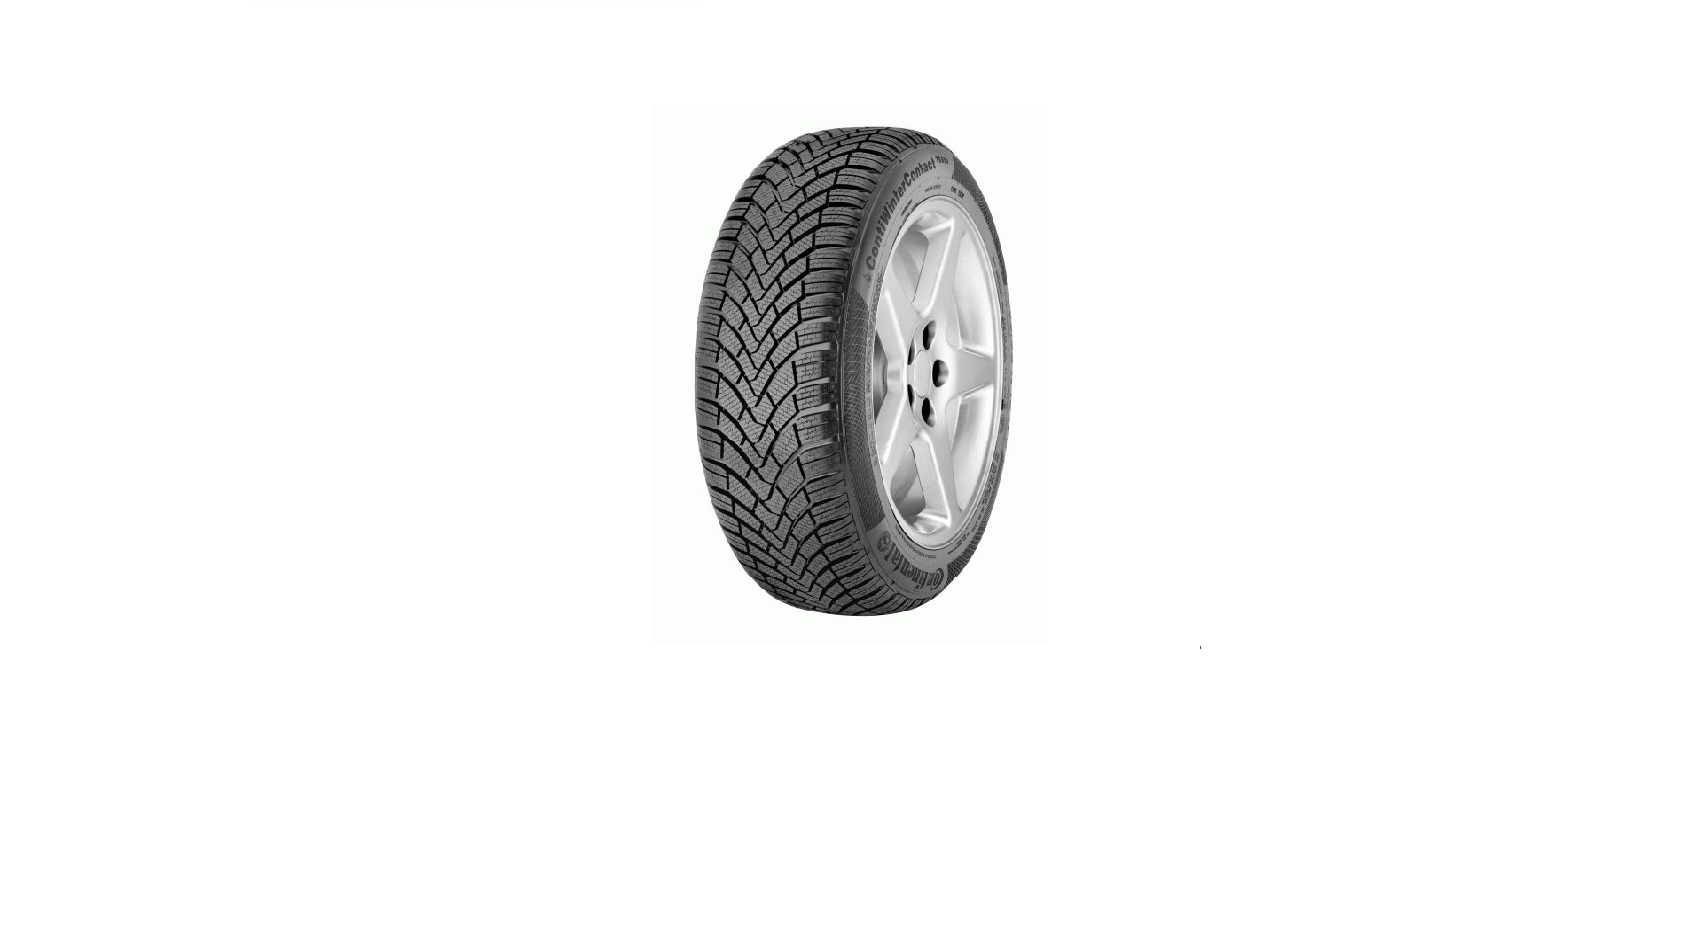 Anvelopa Iarna Continental 195/65r15